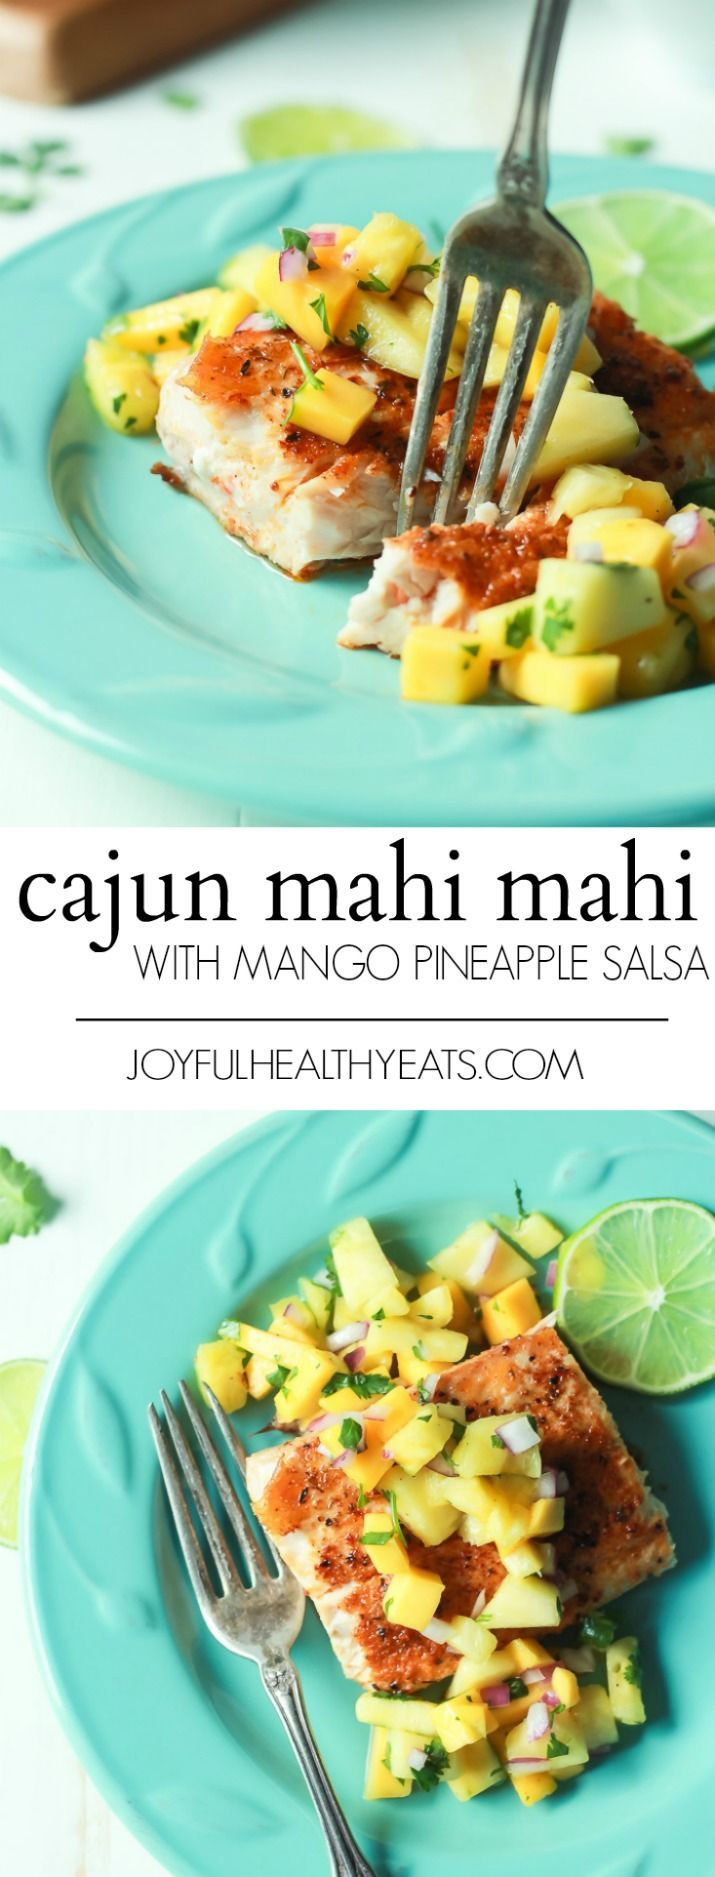 Pan Seared Cajun Mahi Mahi with a fresh Mango Pineapple Salsa, an easy gluten free recipe that takes 15 minutes to make! A taste of the Caribbean! | joyfulhealthyeats.com #recipes